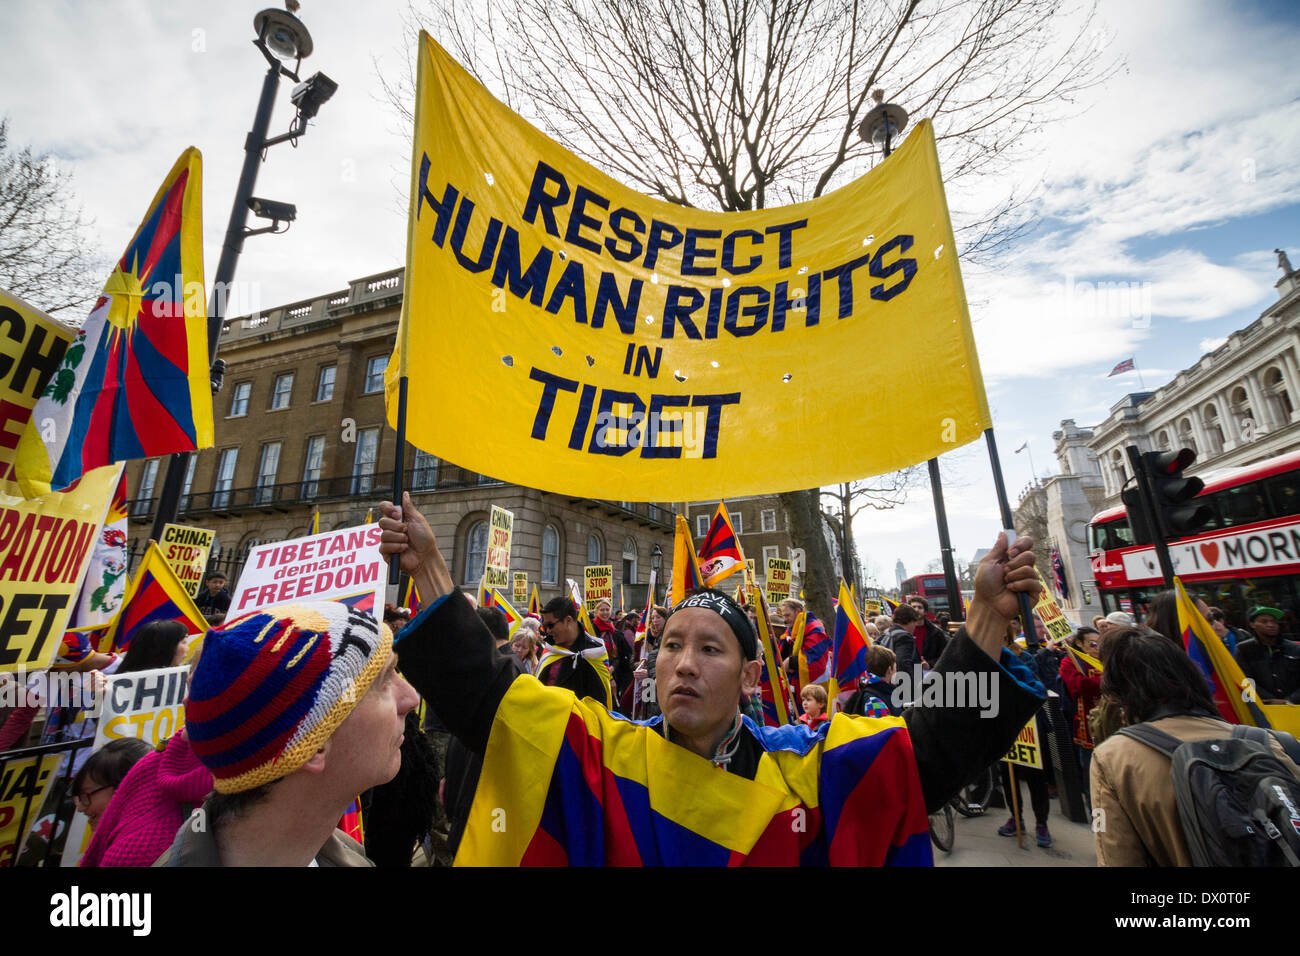 Annual Tibet protest march for Freedom from Chinese occupation in London Stock Photo